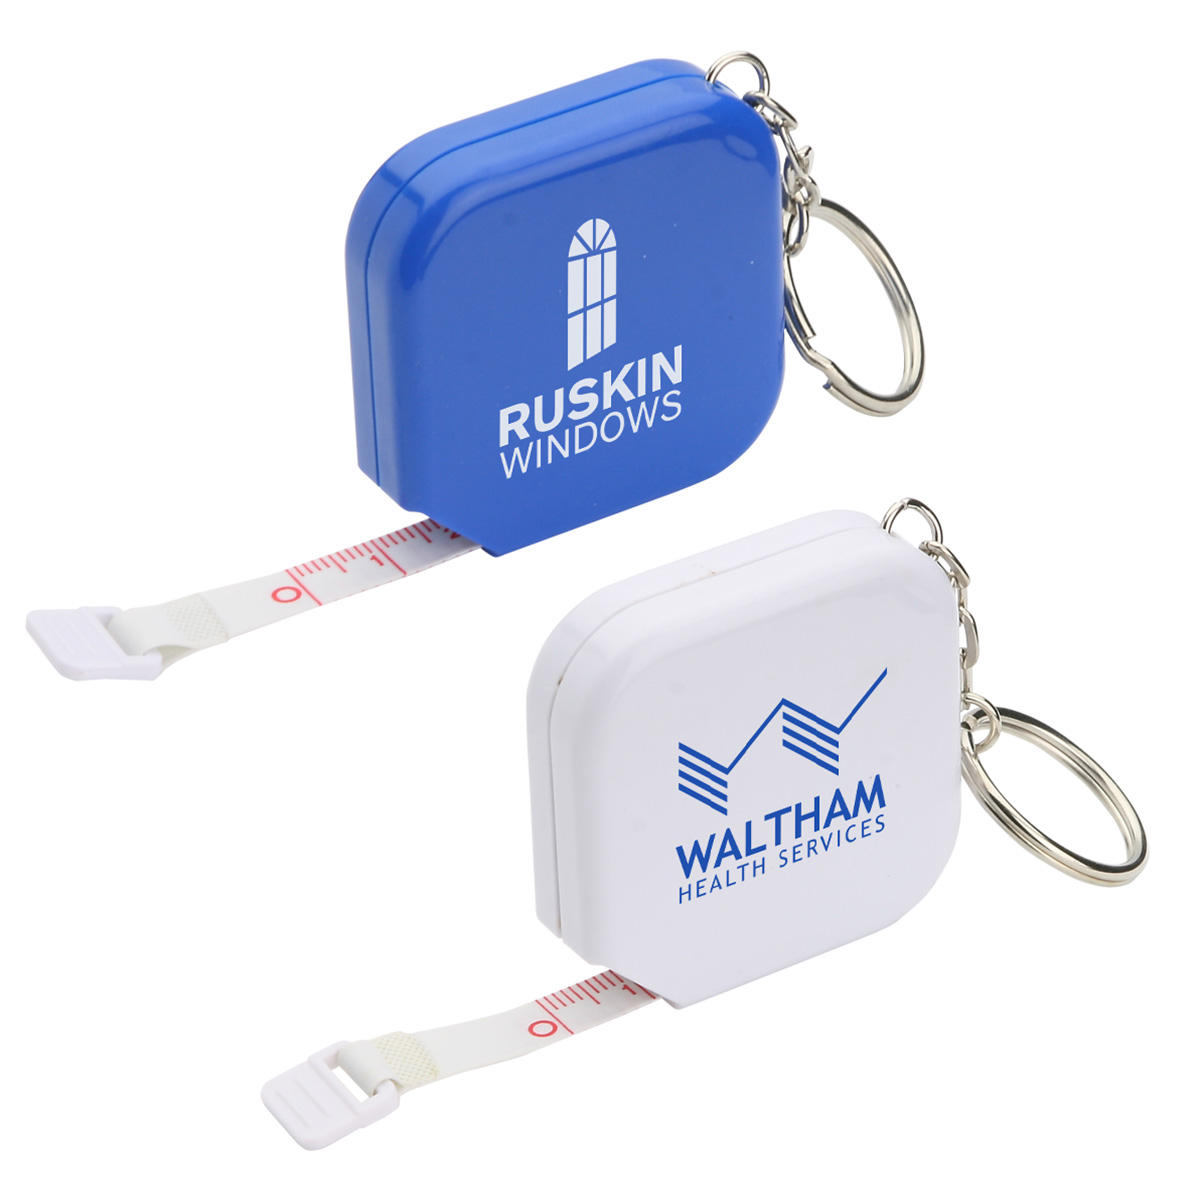 Square Tape Measure Key Chain, WTT-ST11, 1 Colour Imprint